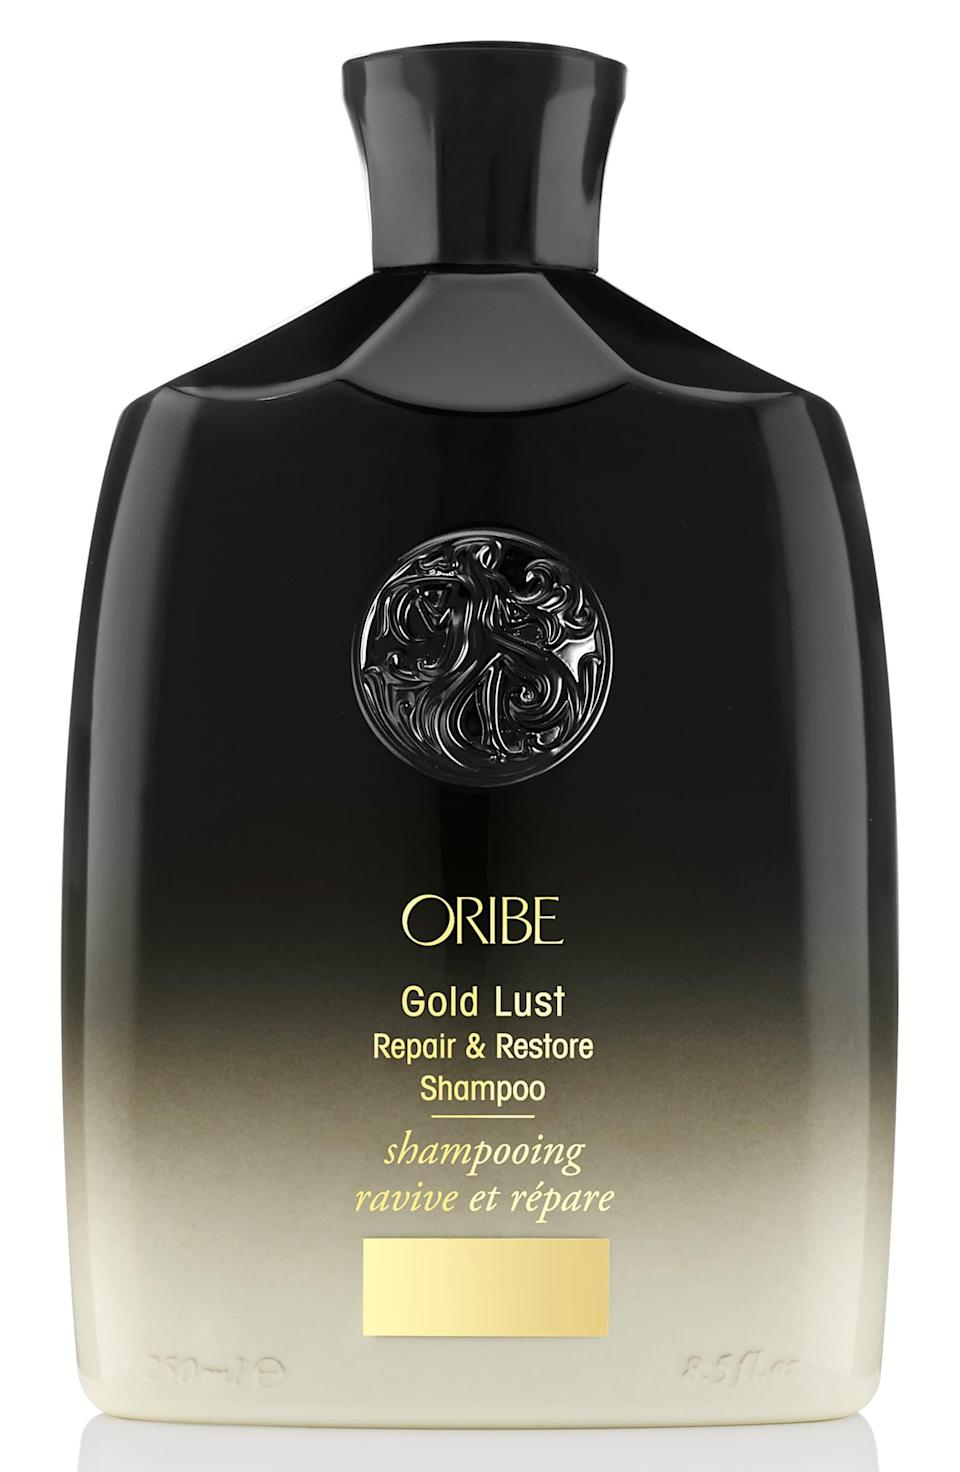 "<h3><a href=""https://shop.nordstrom.com/s/oribe-gold-lust-repair-restore-shampoo/4513788/full"" rel=""nofollow noopener"" target=""_blank"" data-ylk=""slk:Oribe Gold Lust Repair & Restore Shampoo"" class=""link rapid-noclick-resp"">Oribe Gold Lust Repair & Restore Shampoo</a></h3><br>Give her the gift of good hair with this rejuvenating cleanser that reawakens hair to its glossiest, healthiest prime — this is especially relevant for those locks that have lost their luster in quarantine. <br><br><strong>Oribe</strong> Gold Lust Repair & Restore Shampoo, $, available at <a href=""https://go.skimresources.com/?id=30283X879131&url=https%3A%2F%2Fshop.nordstrom.com%2Fs%2Foribe-gold-lust-repair-restore-shampoo%2F4513788%2Ffull"" rel=""nofollow noopener"" target=""_blank"" data-ylk=""slk:Nordstrom"" class=""link rapid-noclick-resp"">Nordstrom</a>"